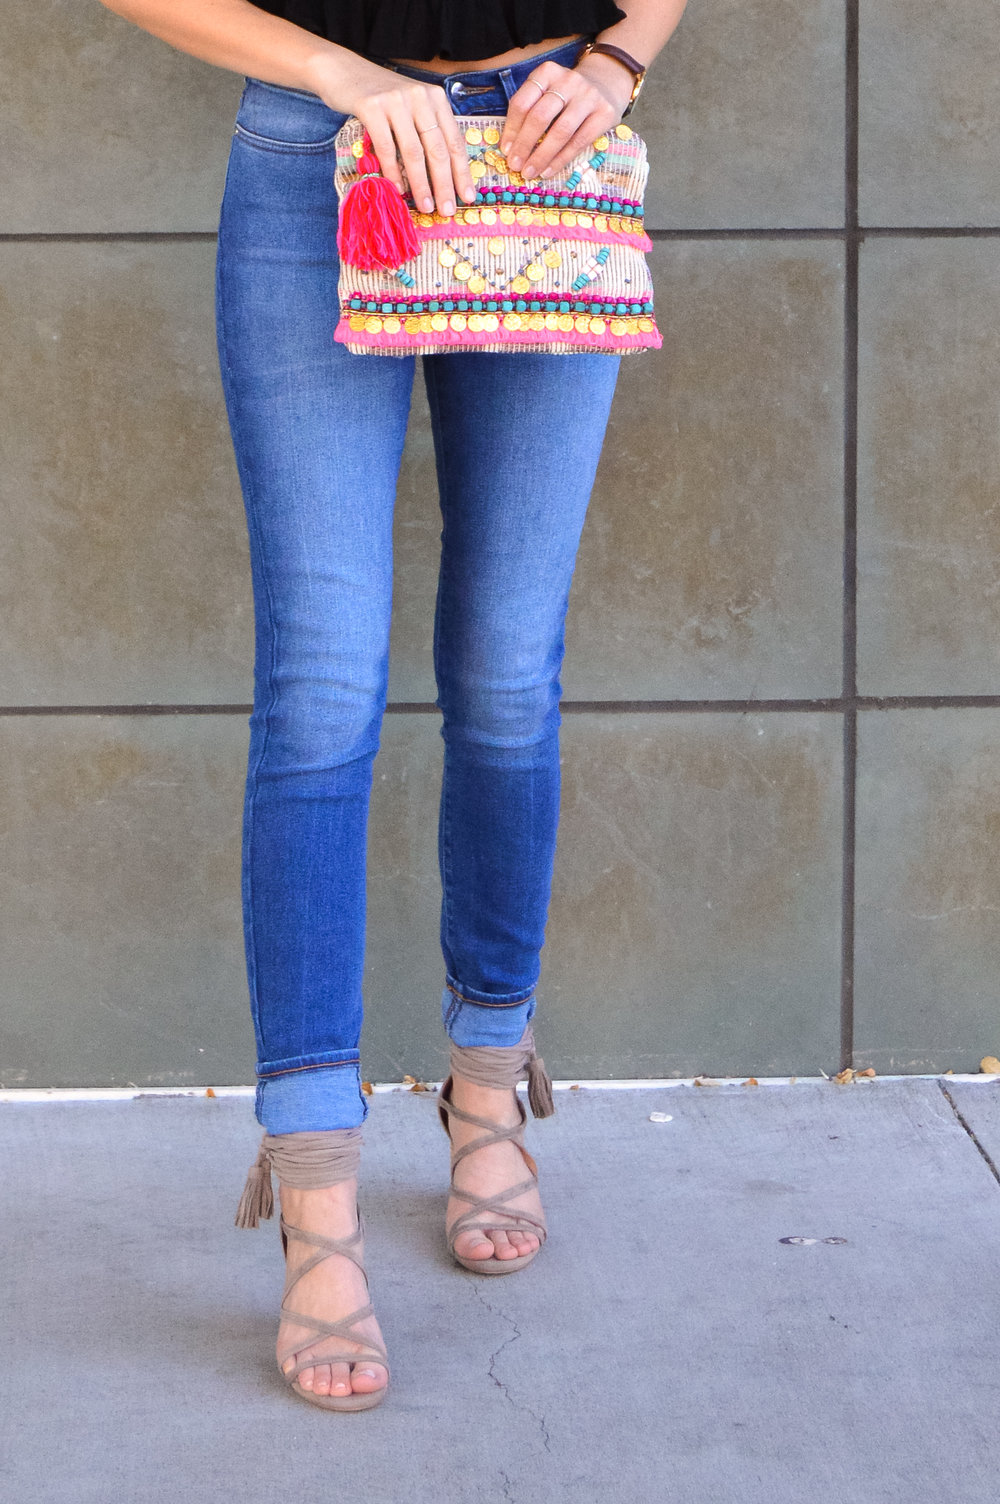 Boho beaded tassel clutch